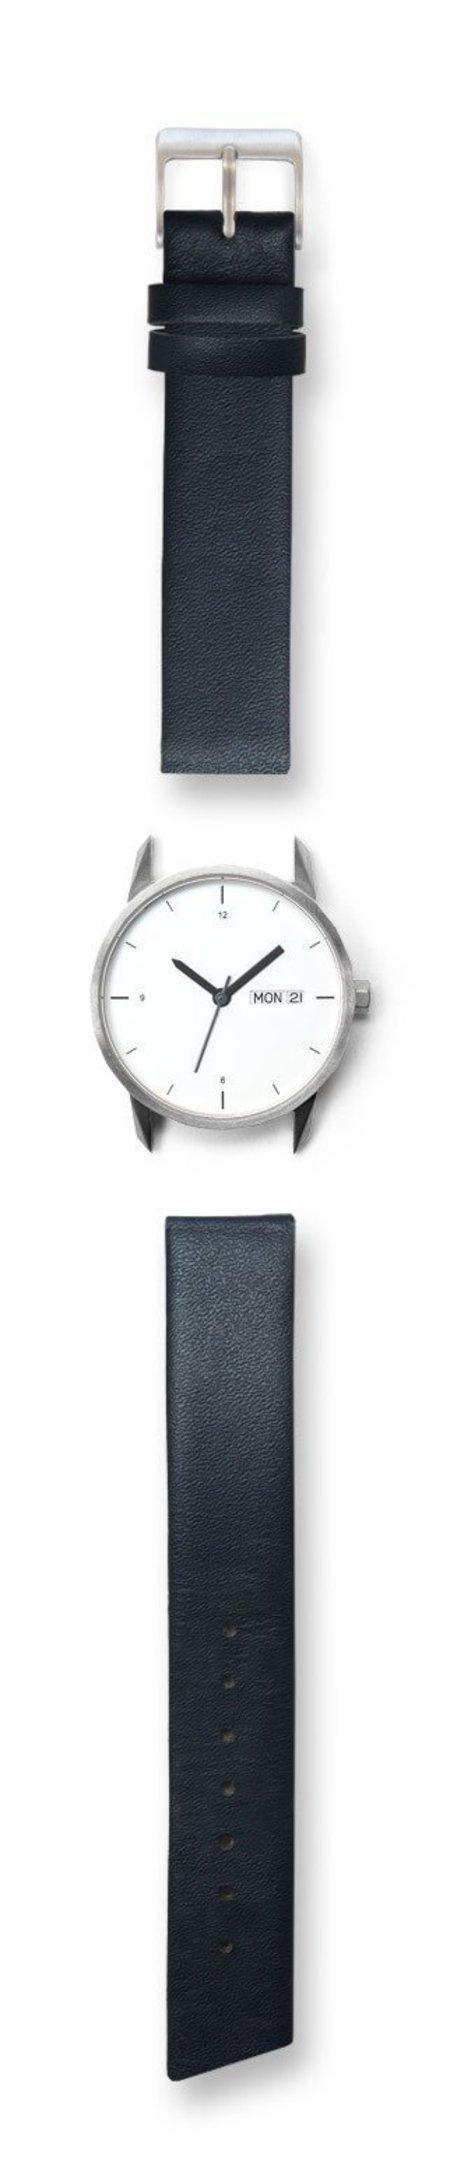 Unisex Tinker Watches 34mm Silver Watch Navy Italian Leather Strap